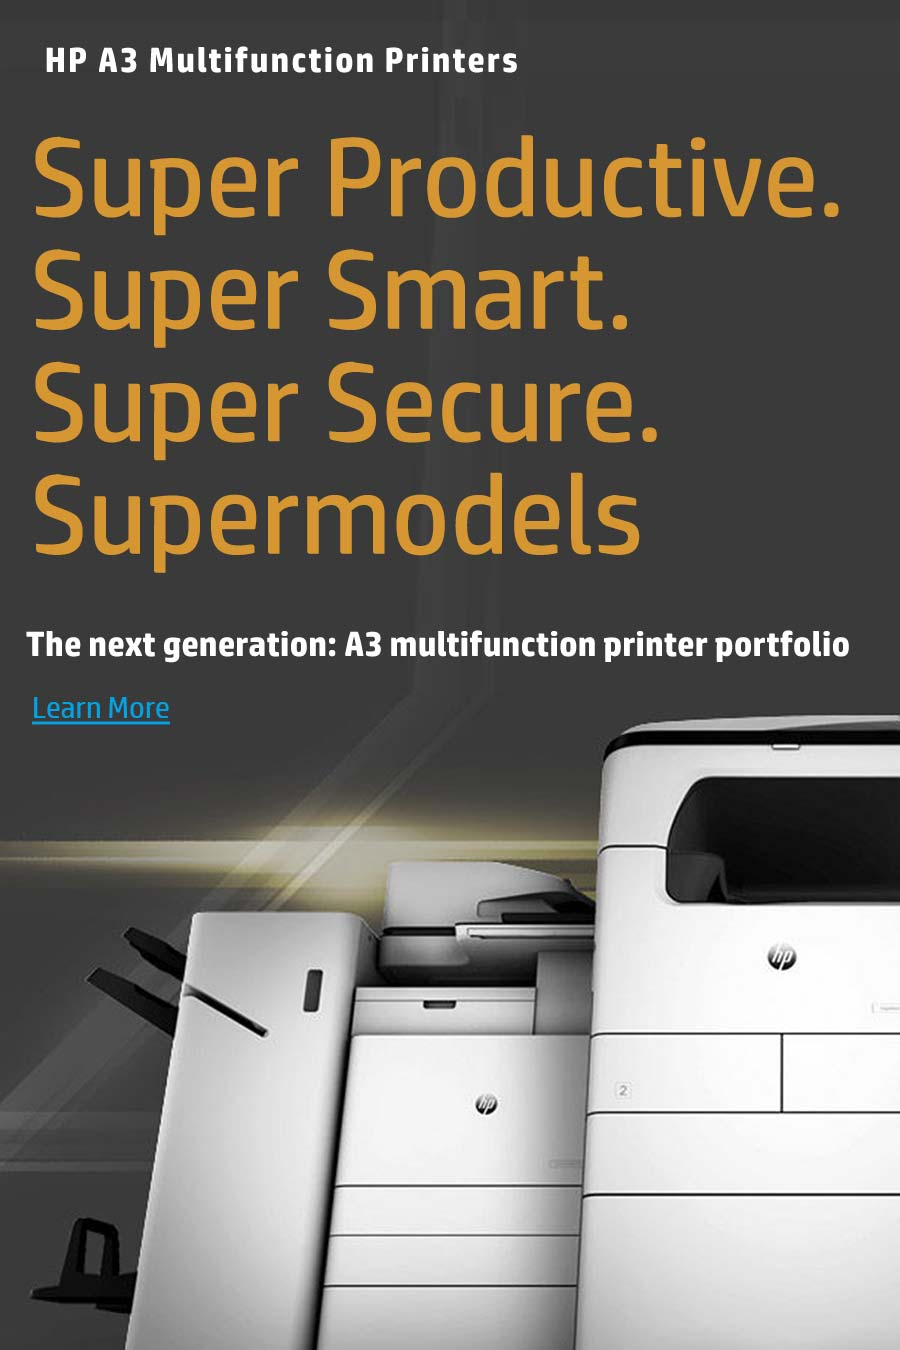 A3 Multifunction Printers